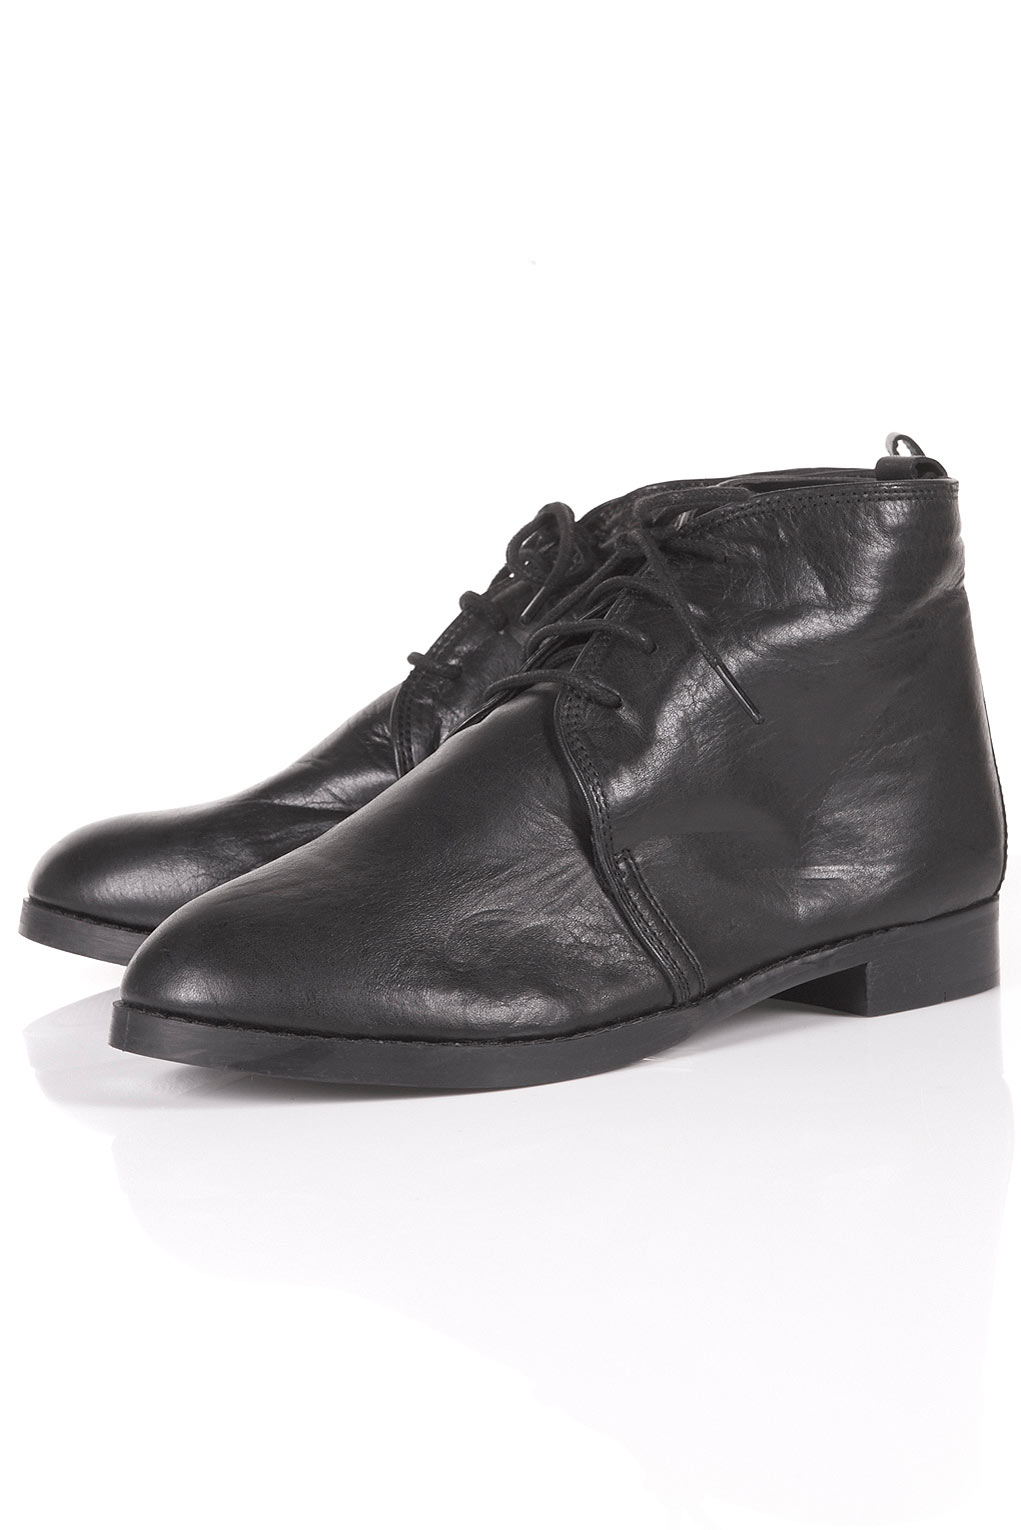 matisse matisse vintage leather boots in black lyst